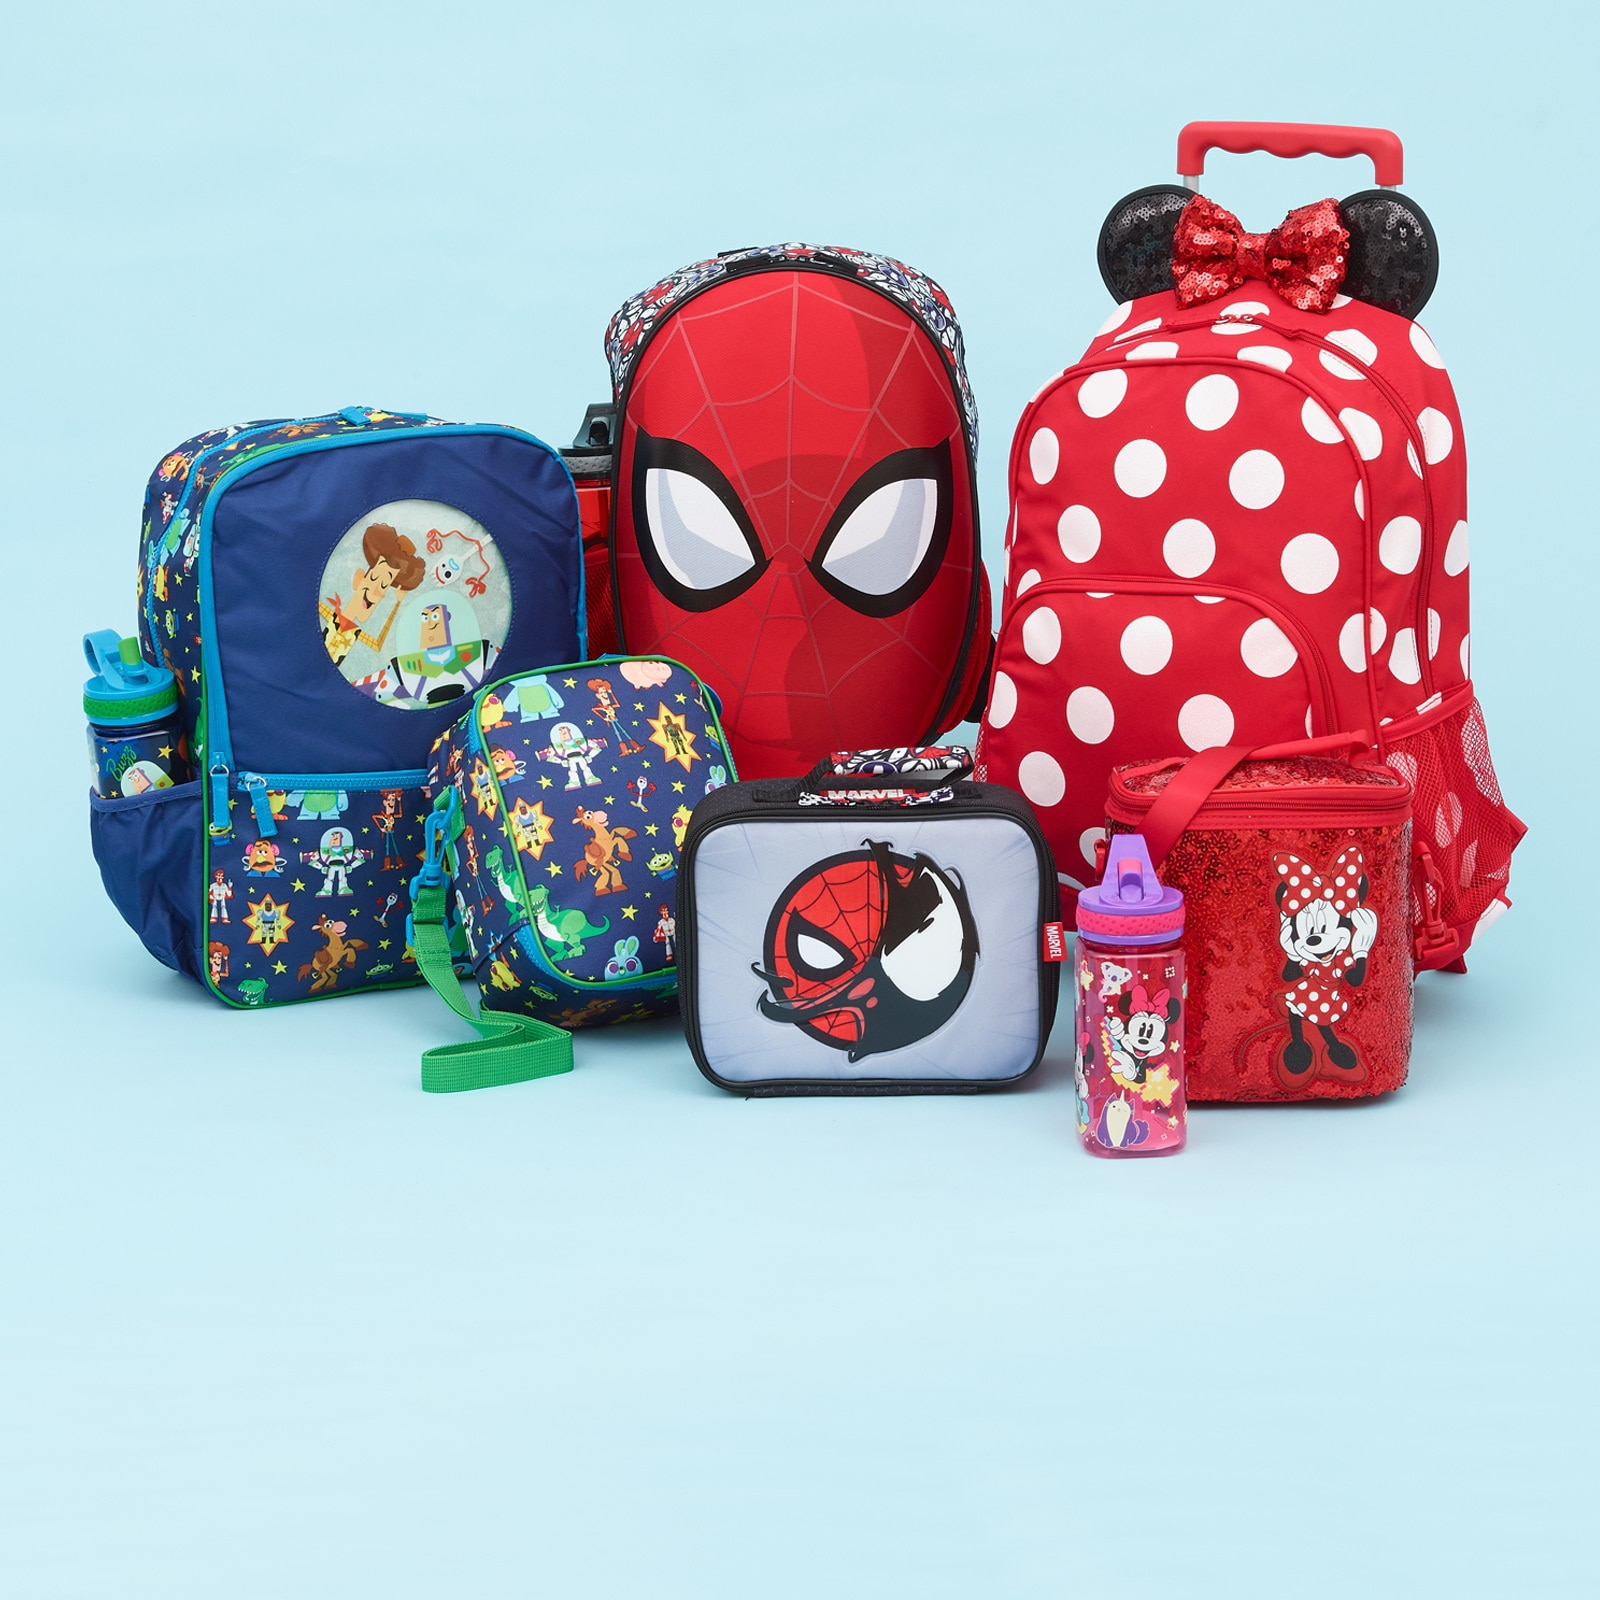 Backpacks inspired by Disney characters